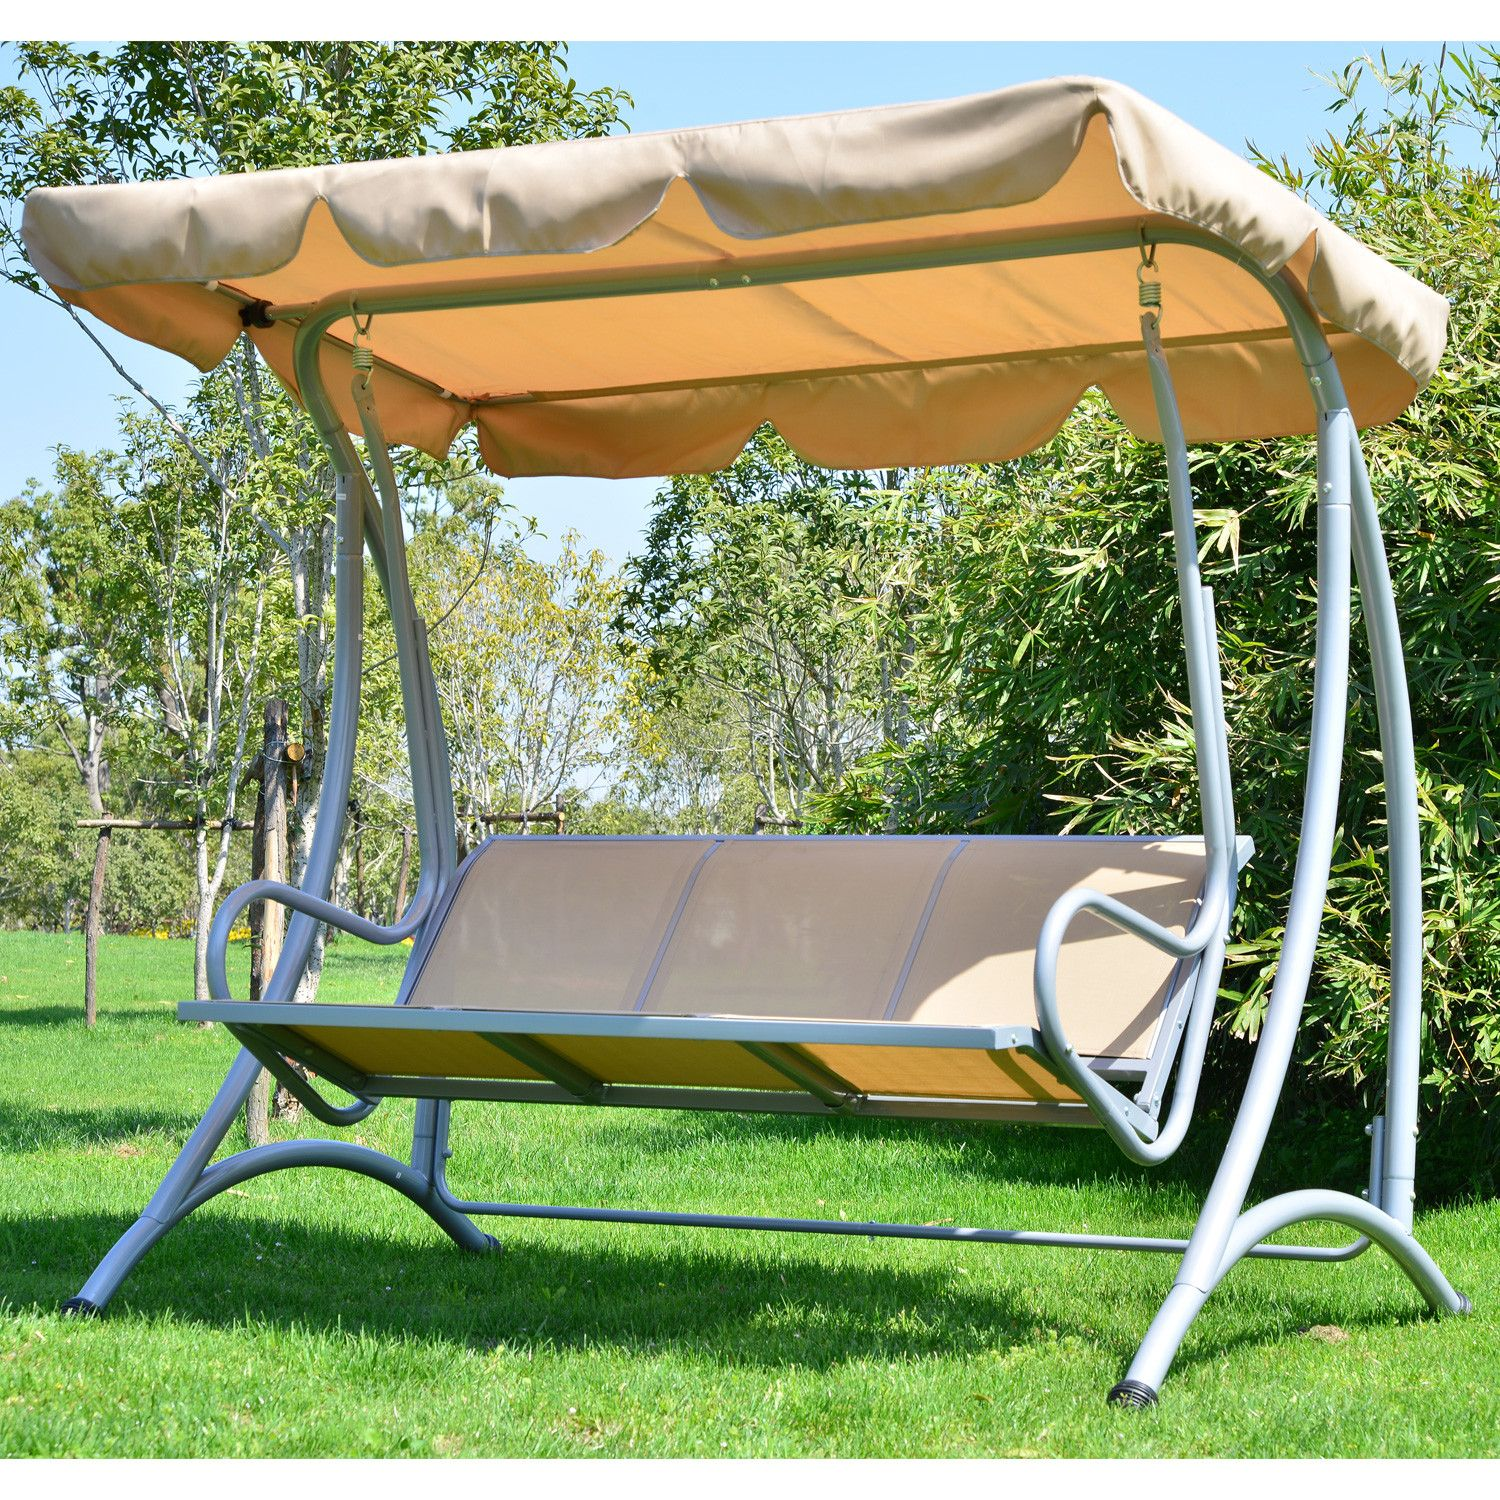 Outsunny outsunny patio swing with stand home improvement